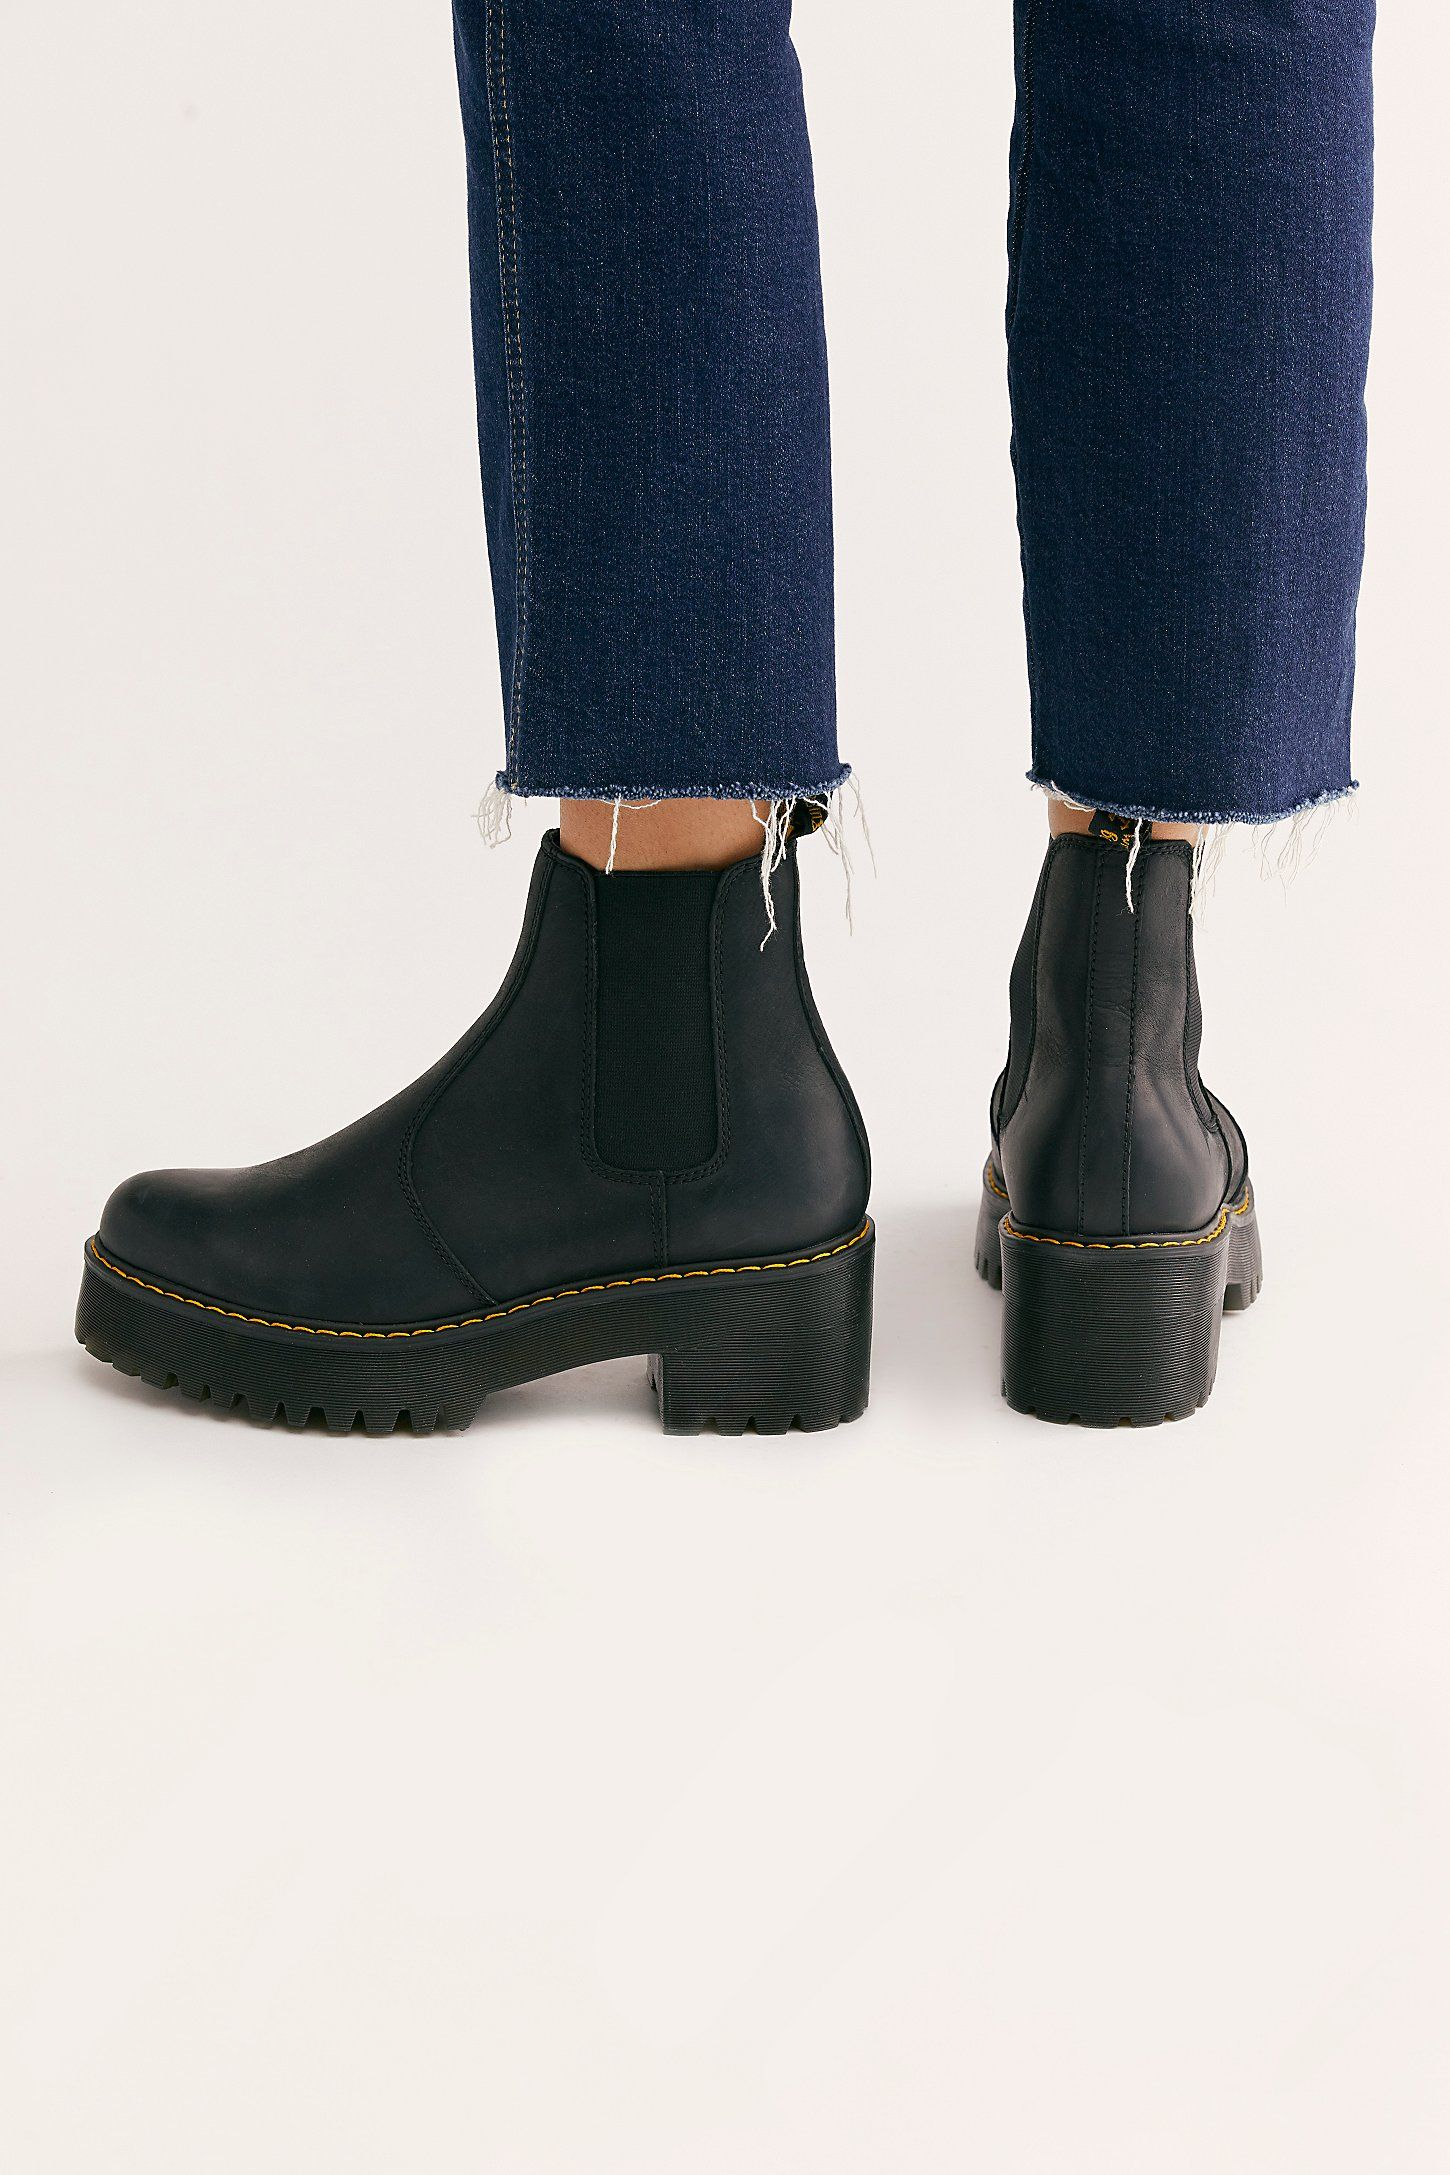 Dr. Martens Rometty Chelsea Boots | Boots, Chelsea boots